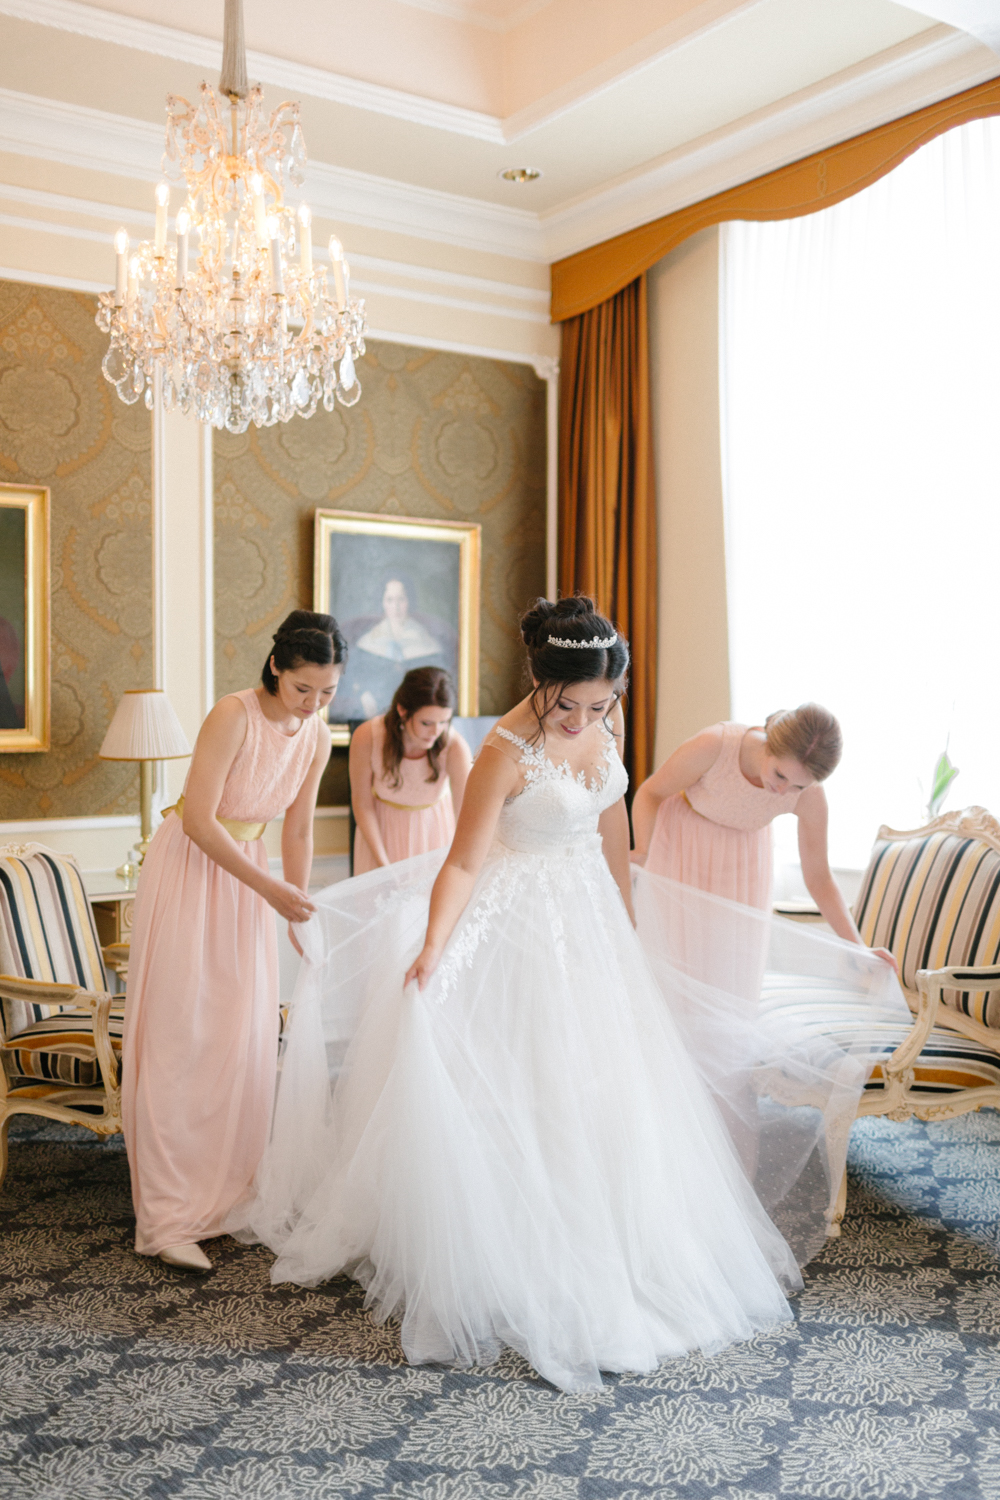 palais pallavicini wedding hotel imperial vienna wedding photographer nikol bodnarova photography 95.JPG